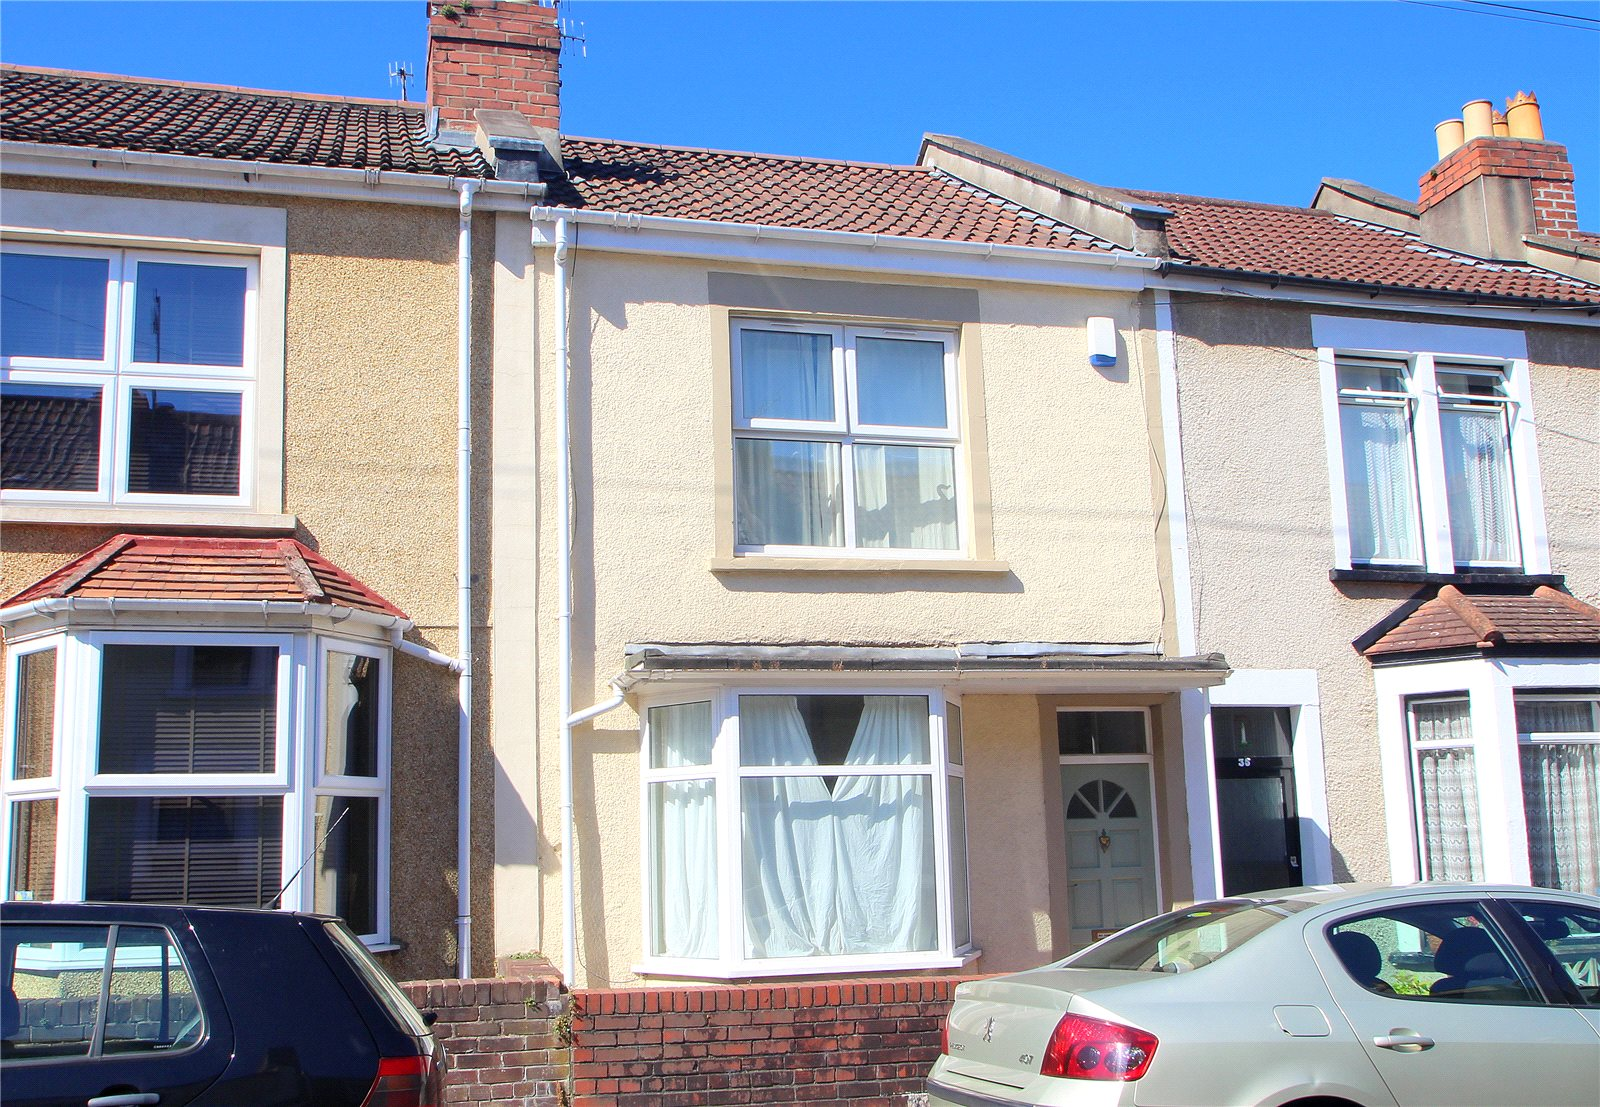 2 Bedrooms Terraced House for sale in Maidstone Street Victoria Park Bristol BS3